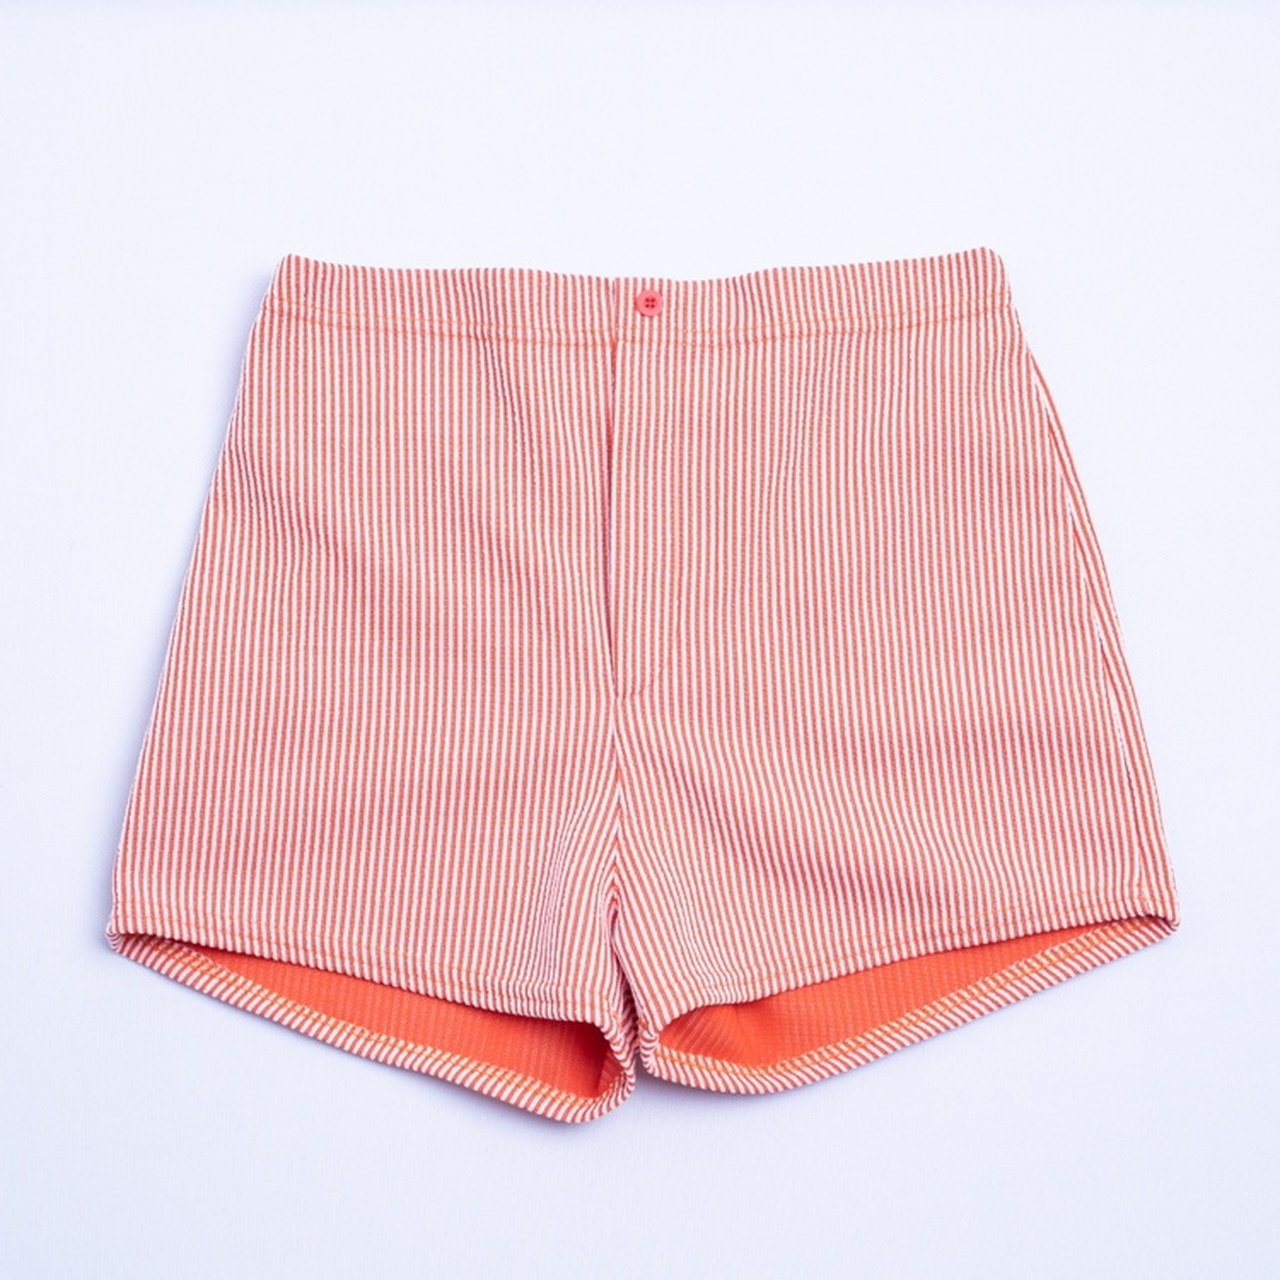 0b3f4d8071 super cute vintage 1960s/70s Gantner of California swim shorts! These  shorts can be worn as swim shorts or regular shorts! There's no zipper in  the ...